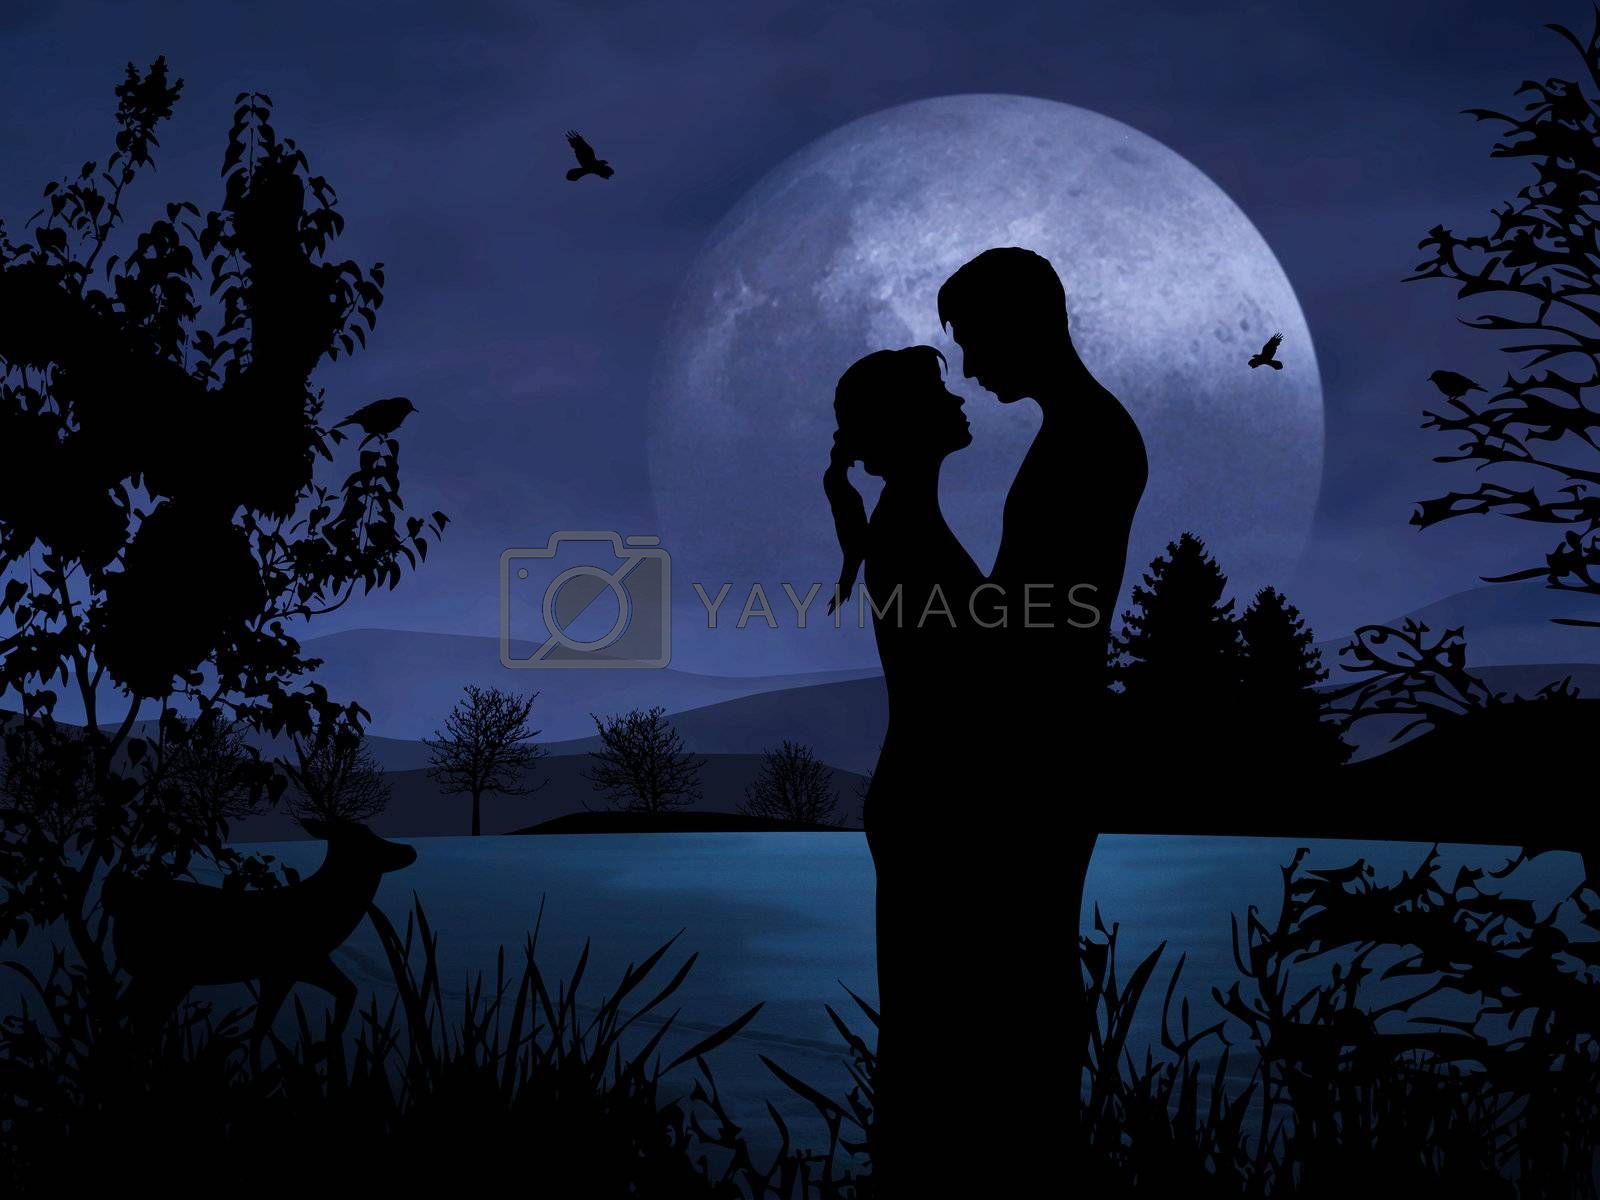 Couple in Romance by Hasenonkel